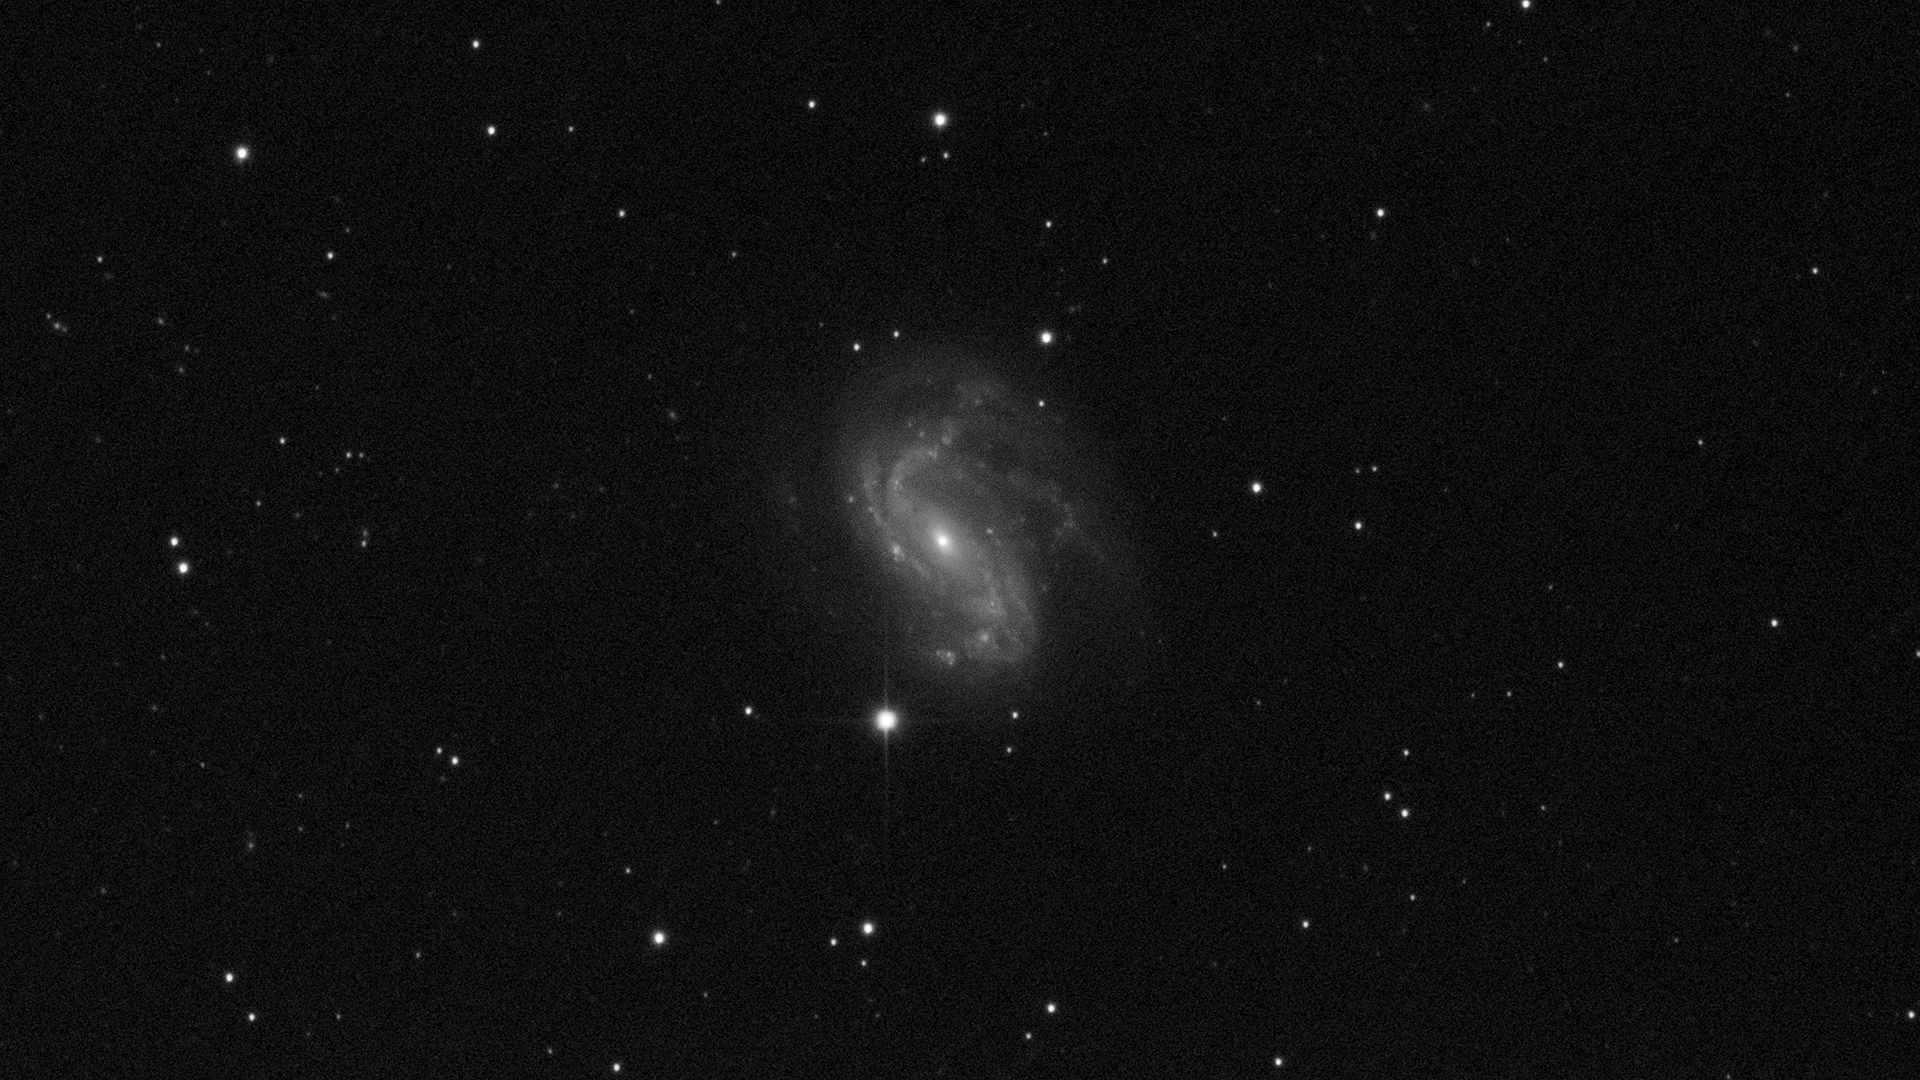 r_pp_NGC4051_stacked.png.28b822750cb4b7fc39921221e0813cfd.png